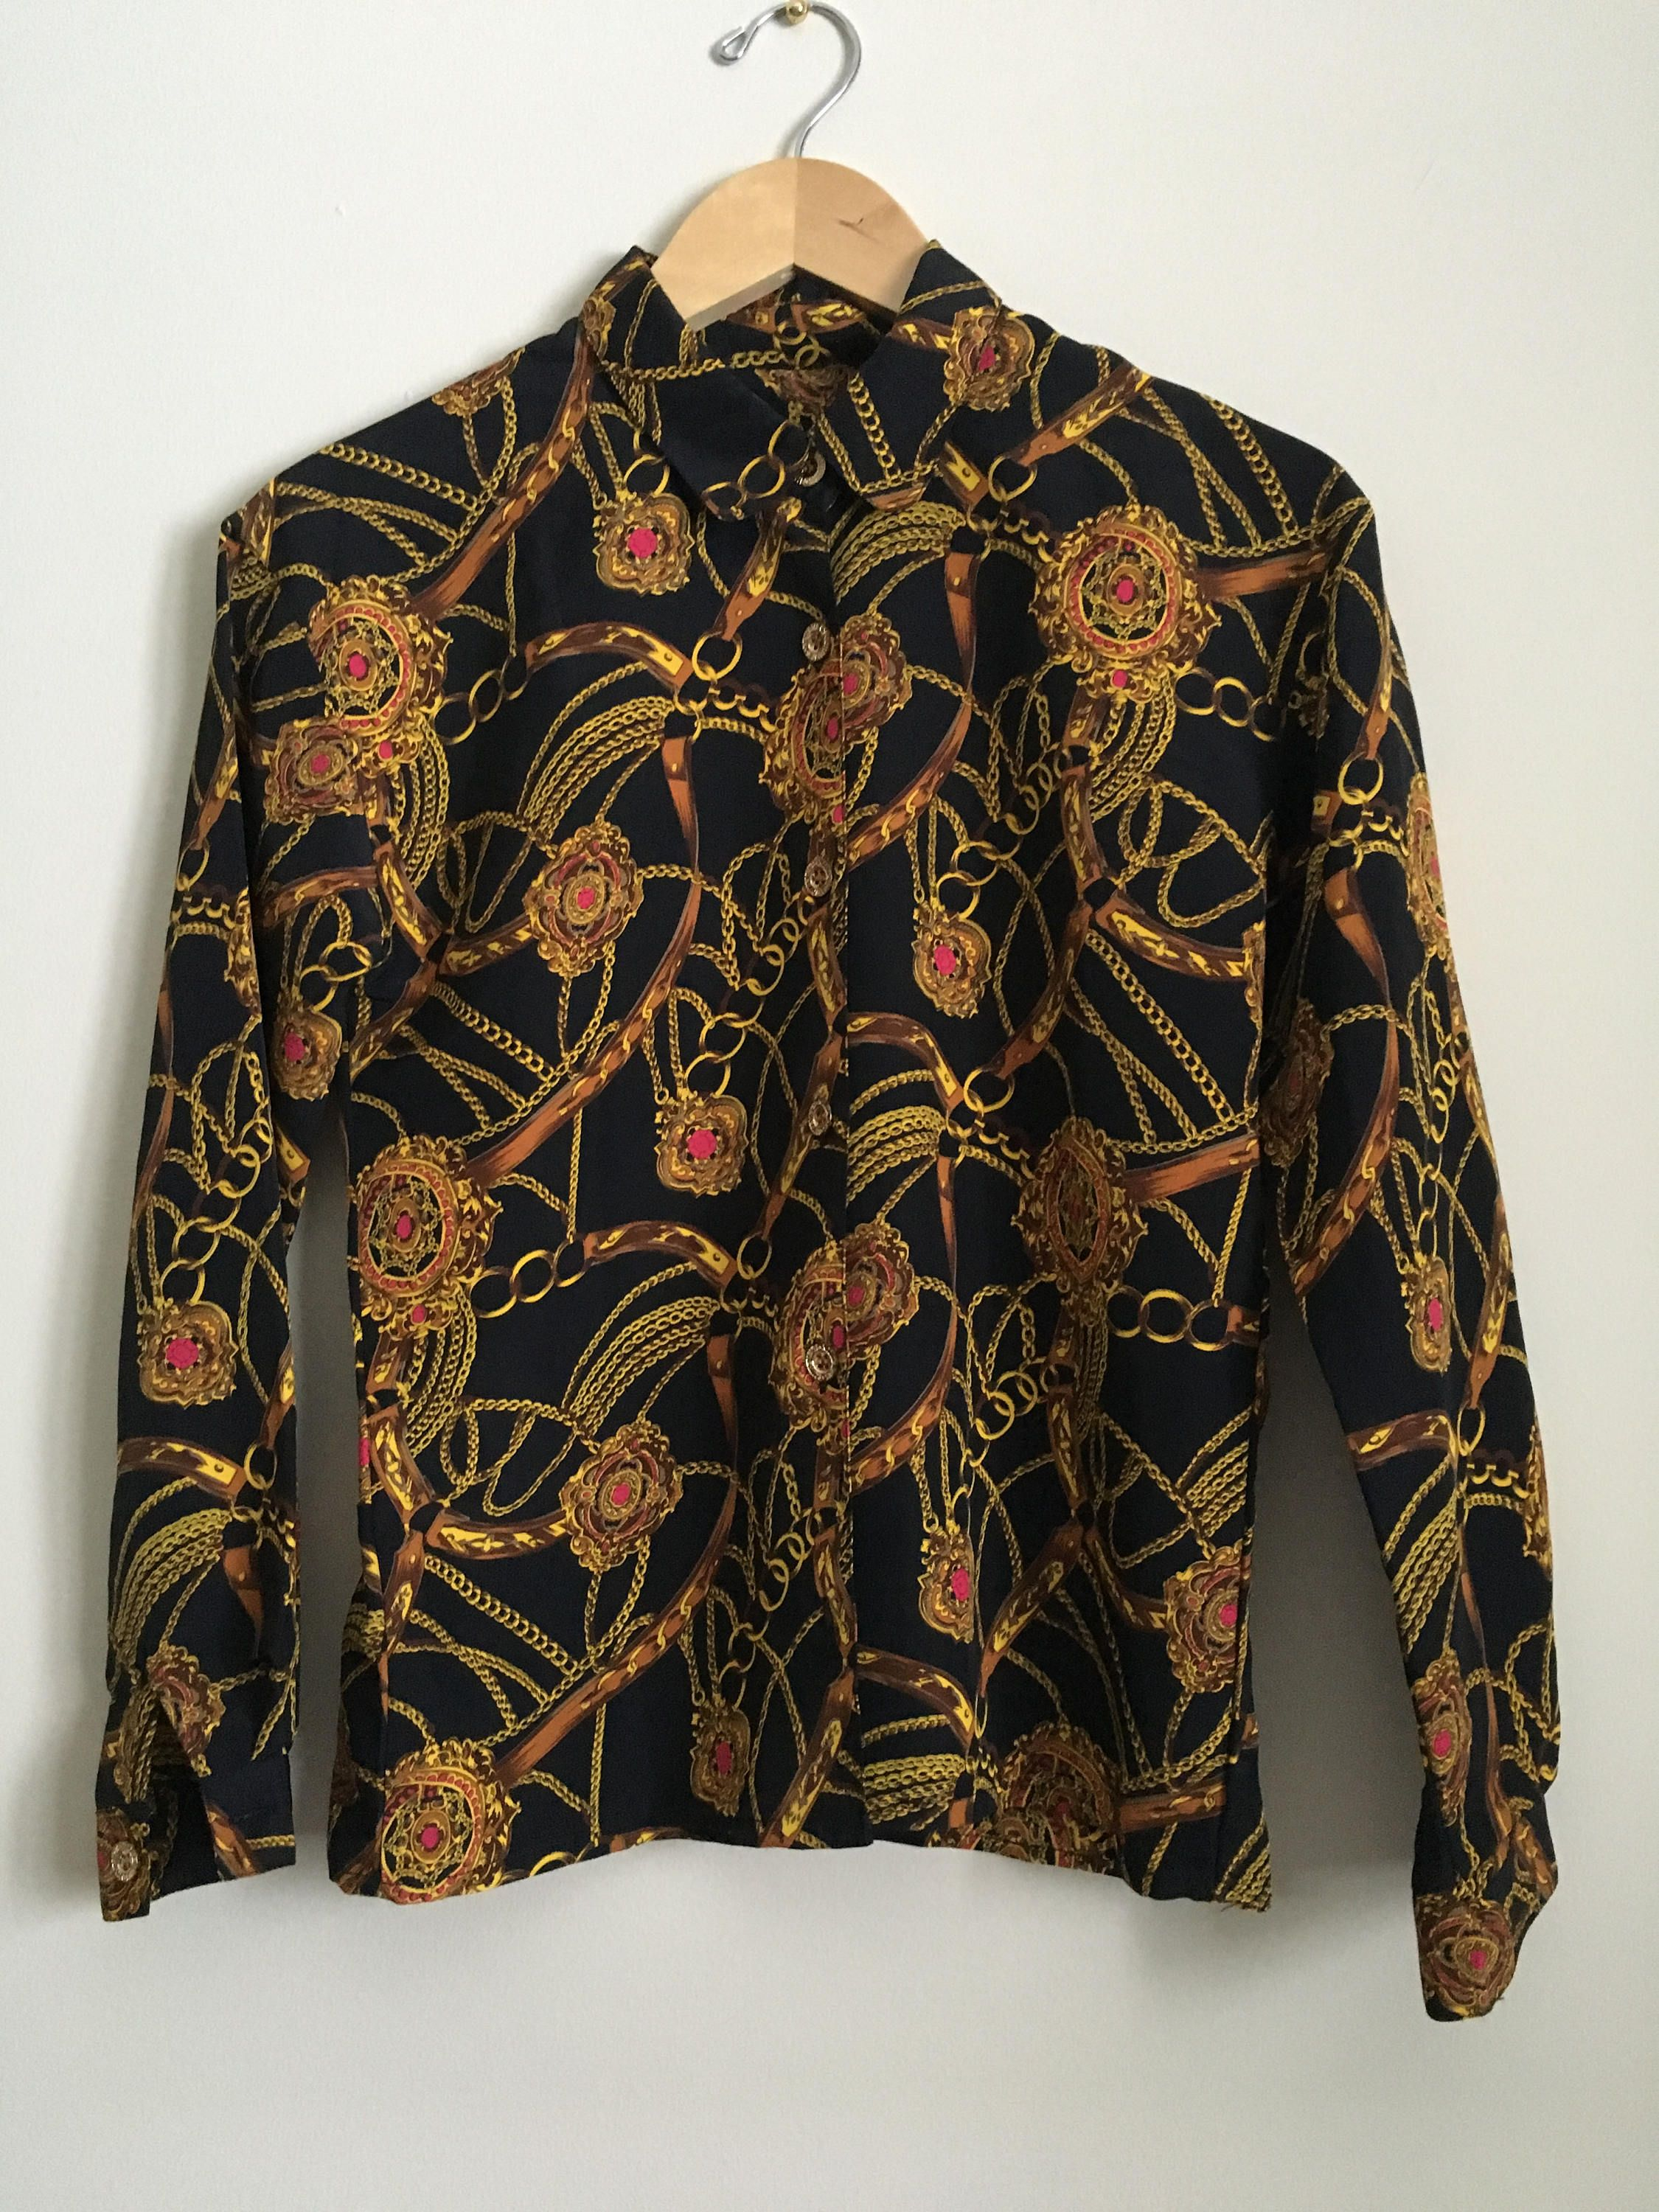 90s Printed Blouse Medium 1990s Button Down Long Sleeve